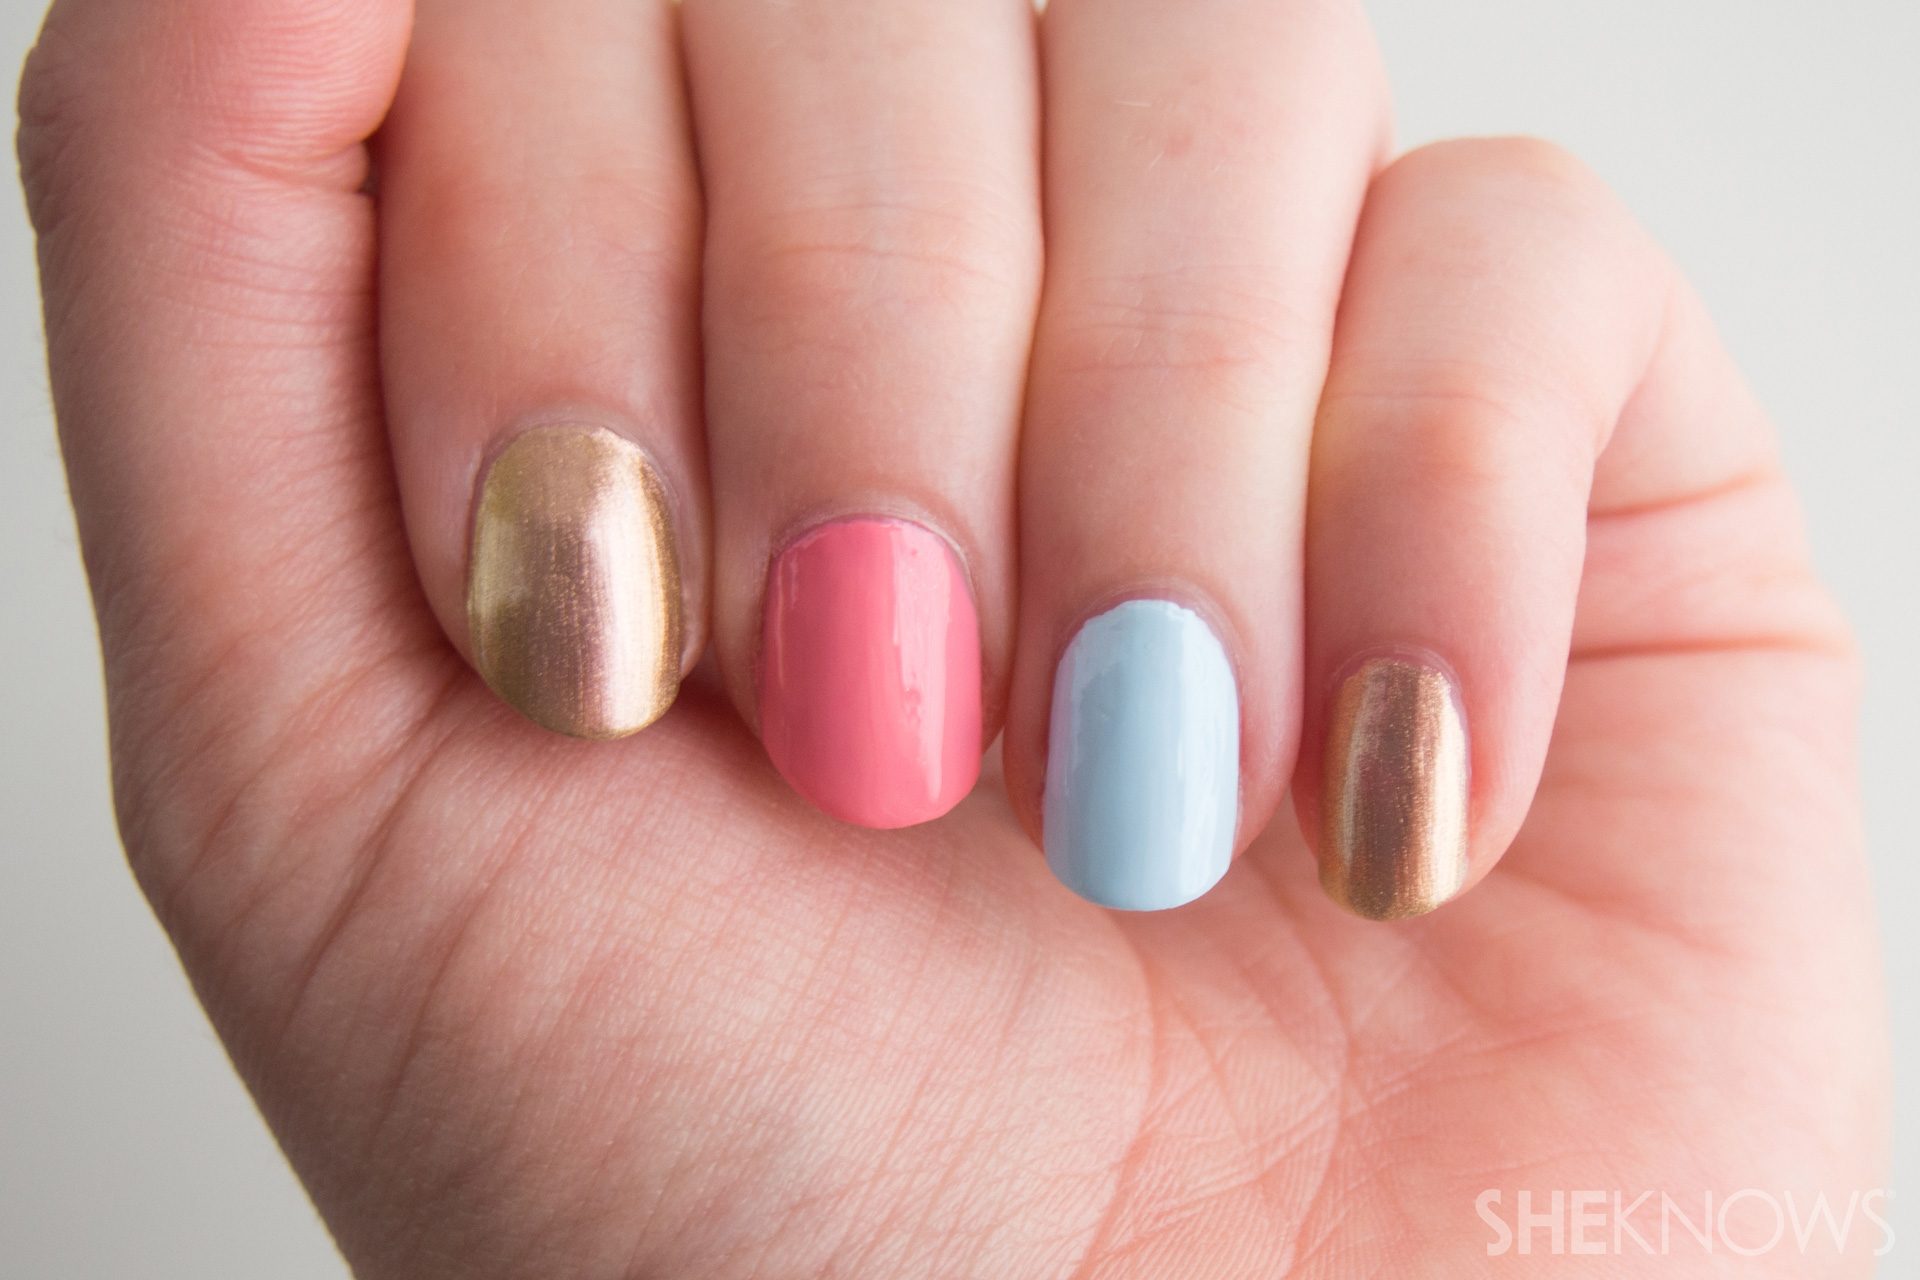 Hand with painted nails in different colors